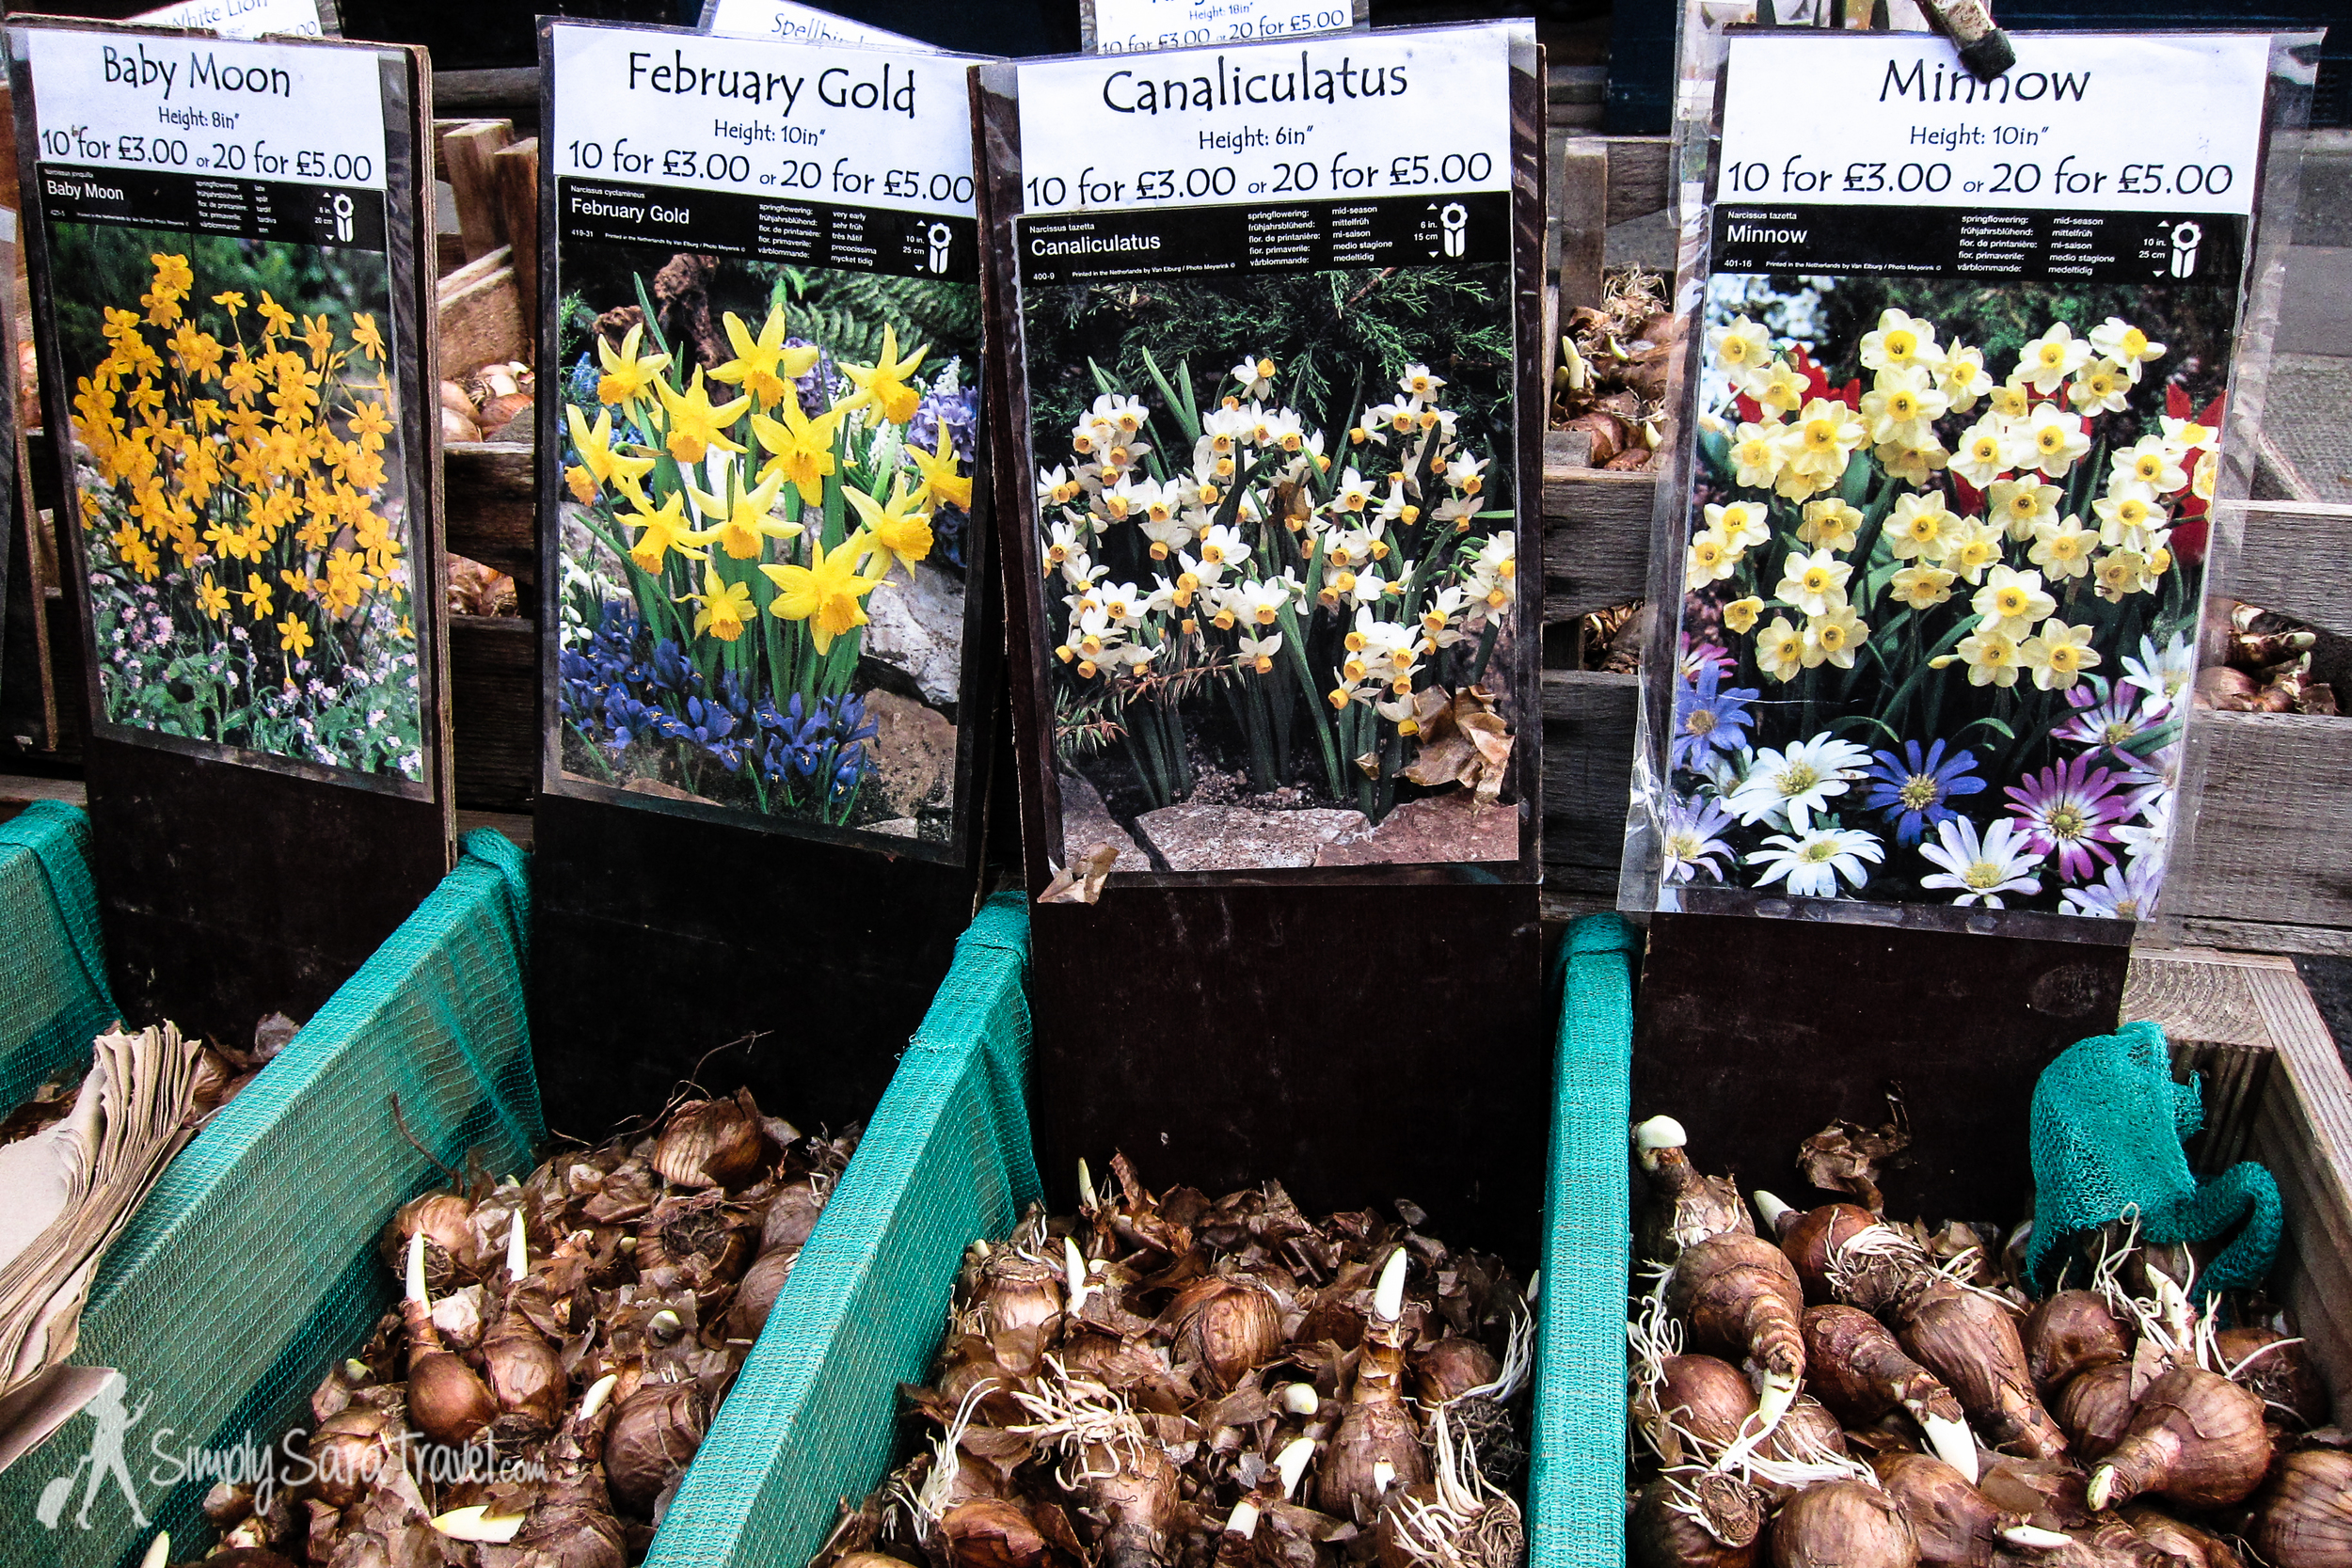 There were lots of flower bulbs too for those with a green thumb.